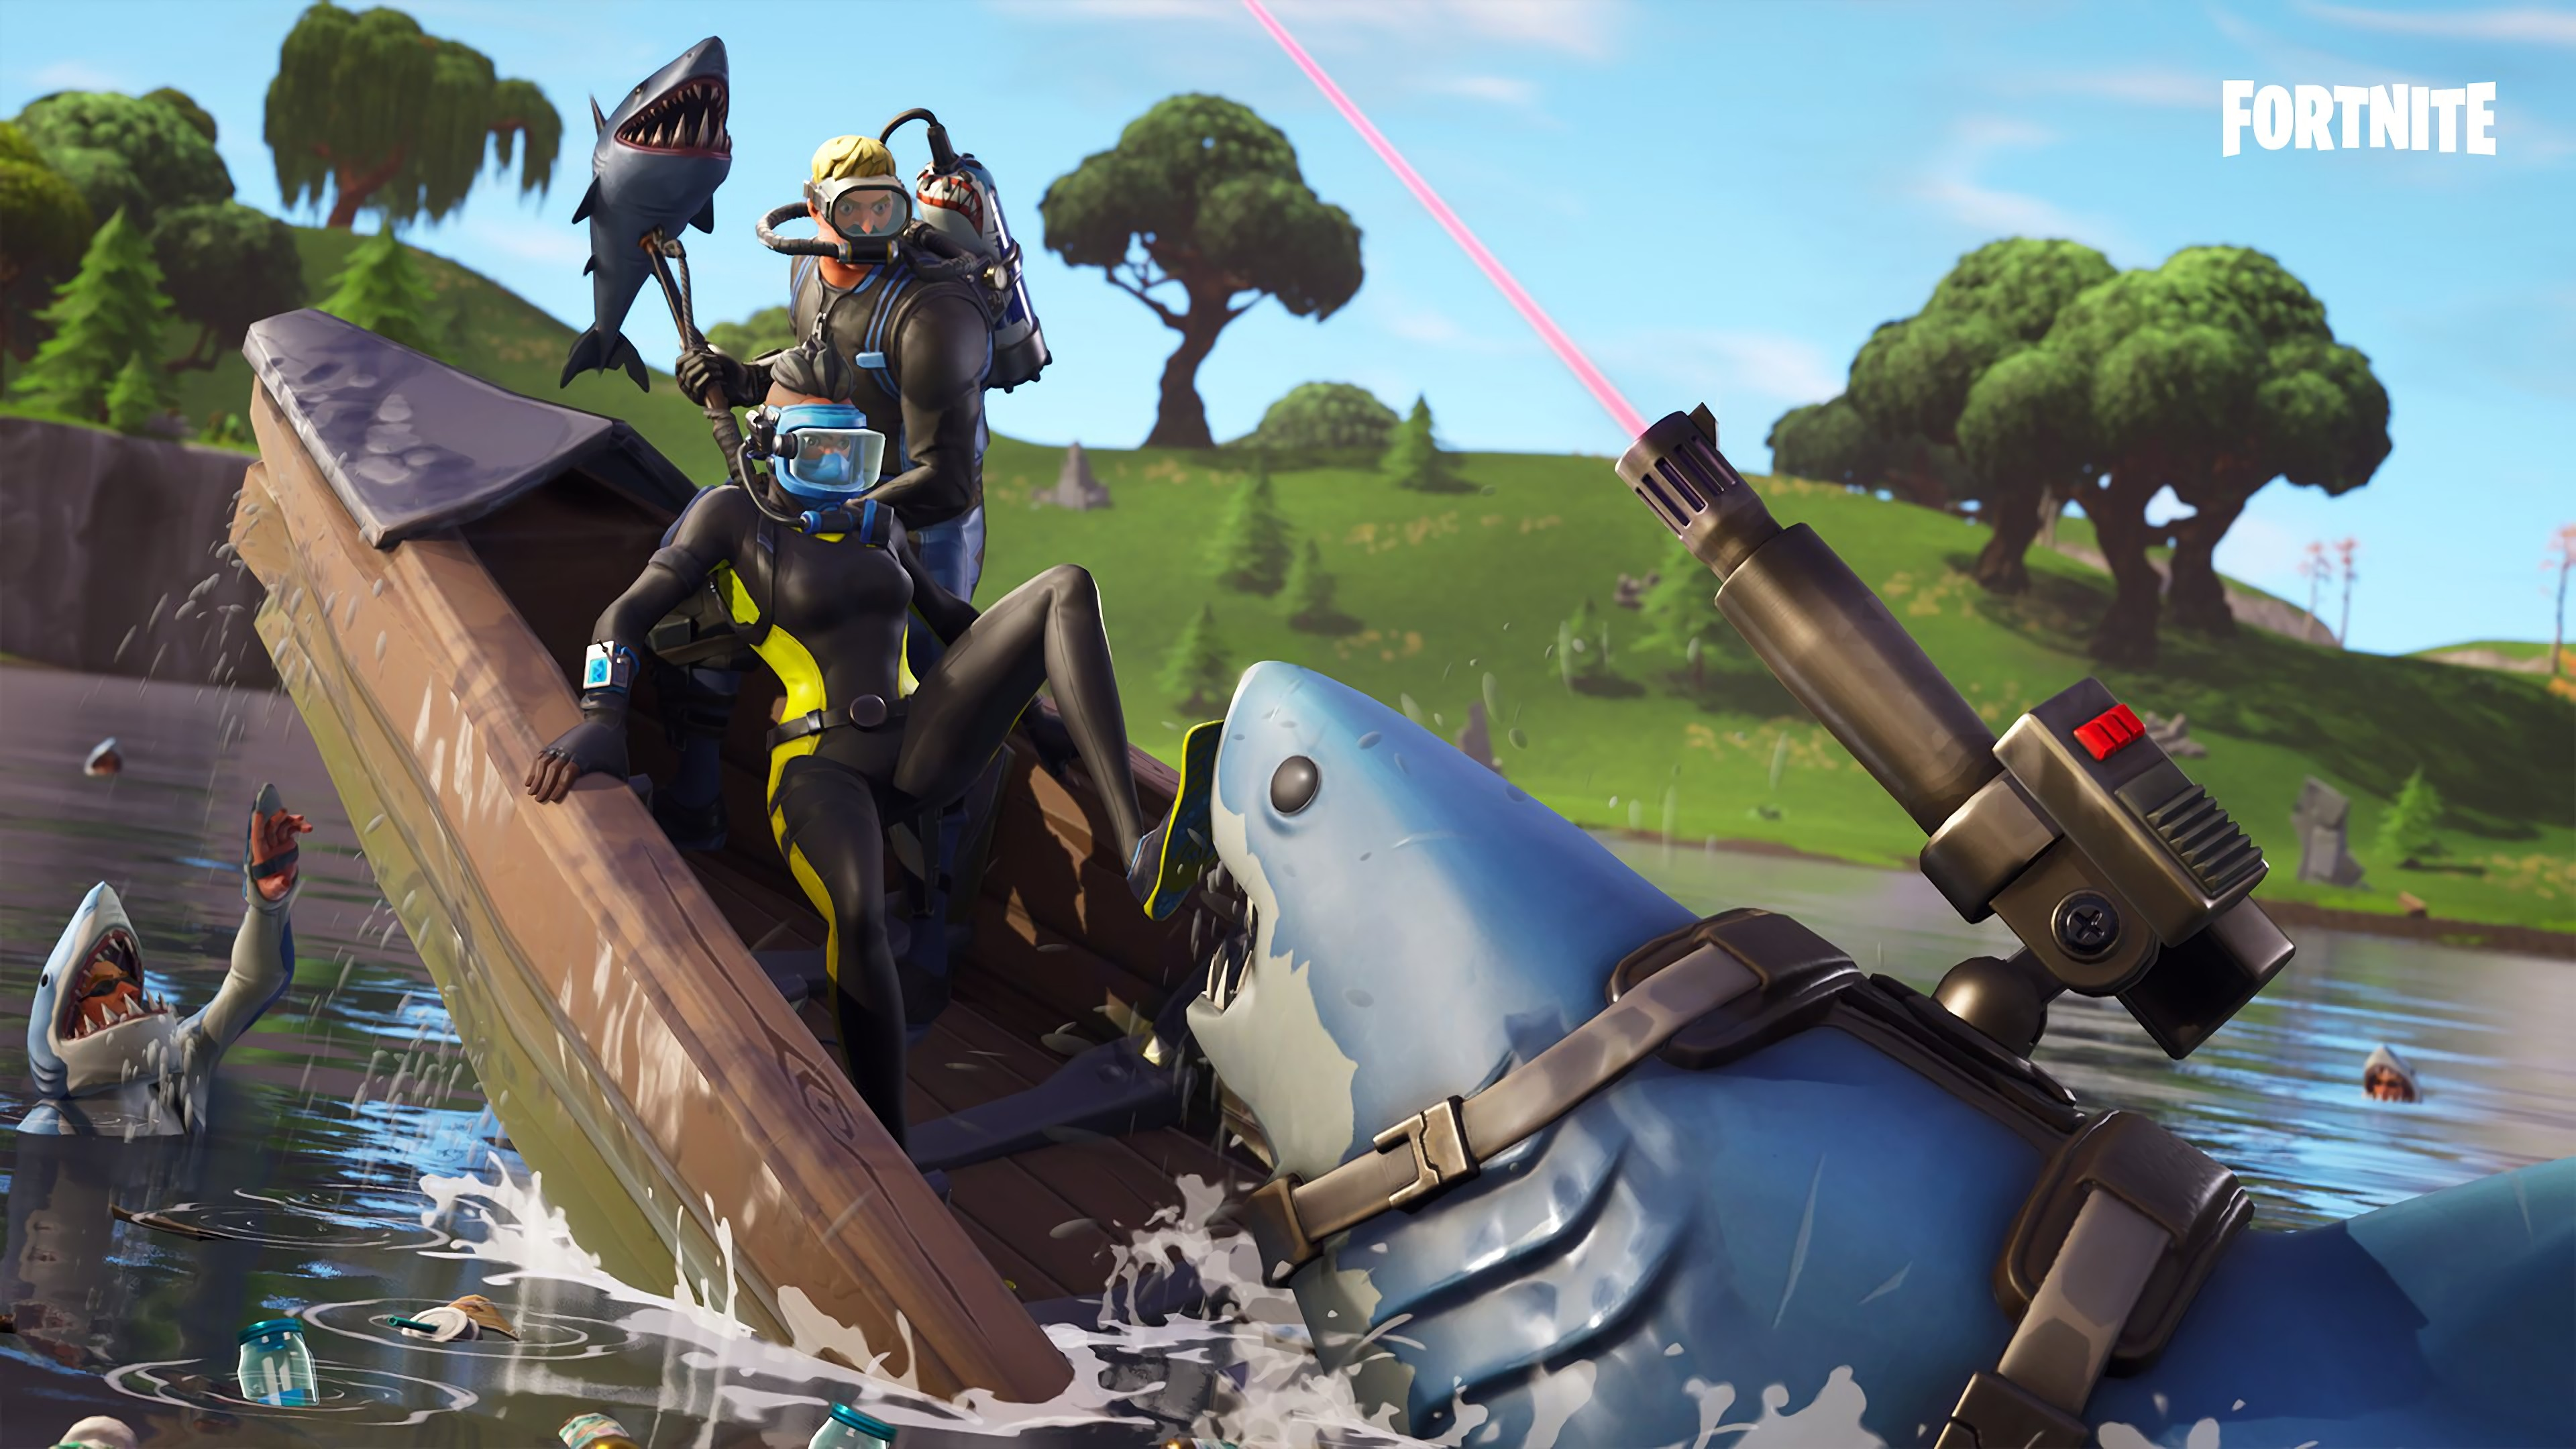 Wallpaper fortnite screenshot 4k games 19924 - 4k fortnite wallpaper ...